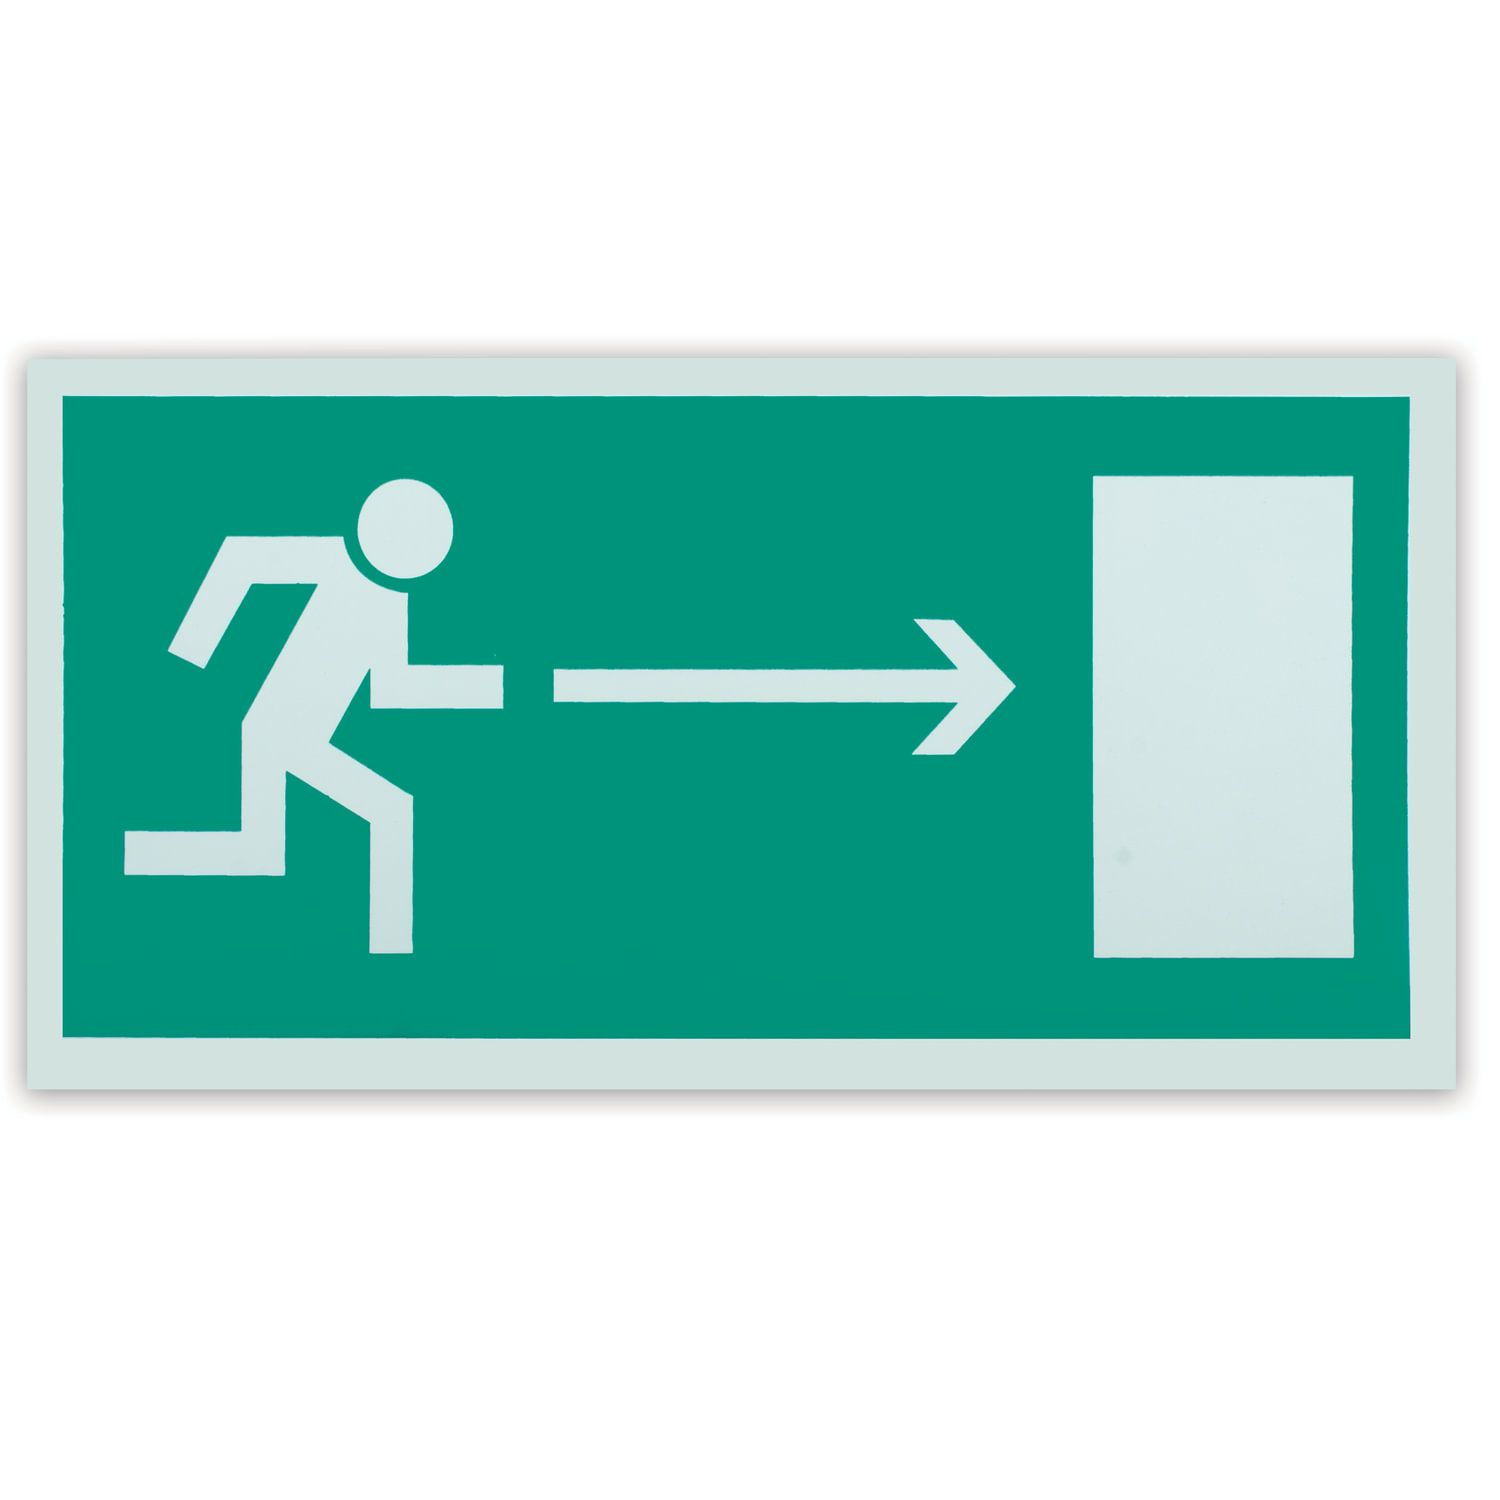 """Evacuation sign """"Direction to the emergency exit to the right"""", 300x150 mm, self-adhesive, photoluminescent"""